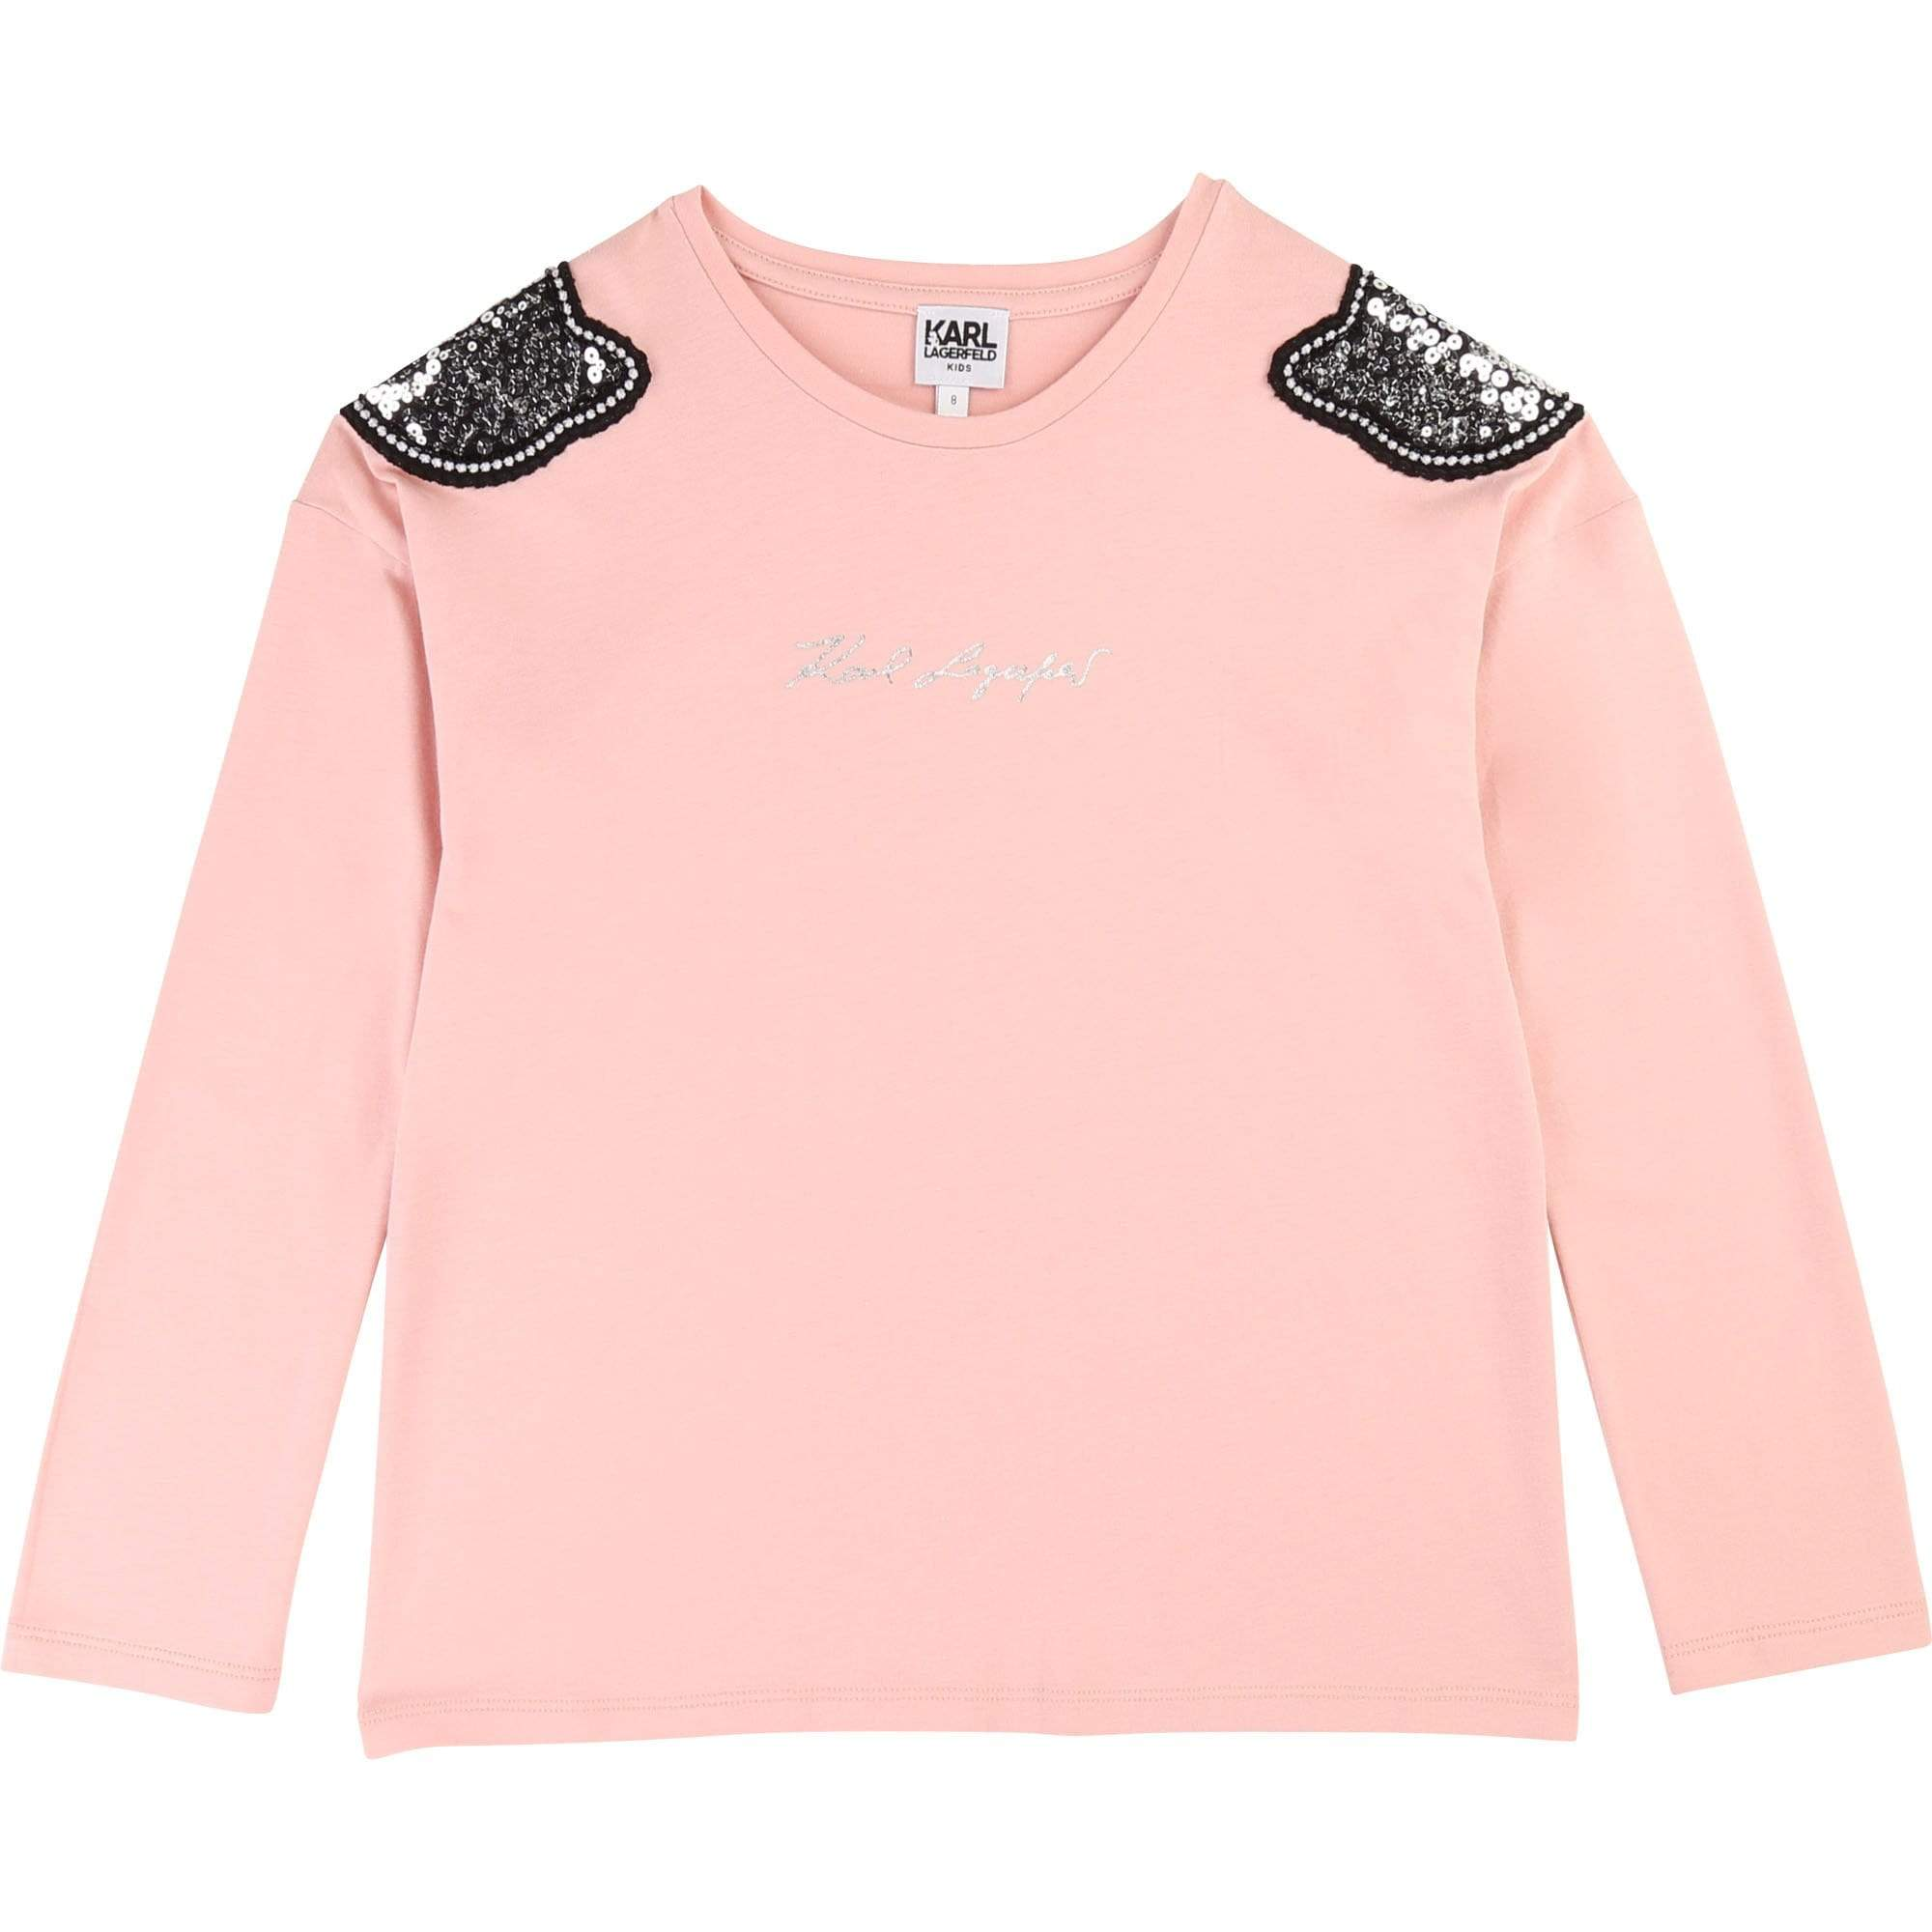 Karl Lagerfeld Chandails 6Y / Rose Tee shirt manches longues